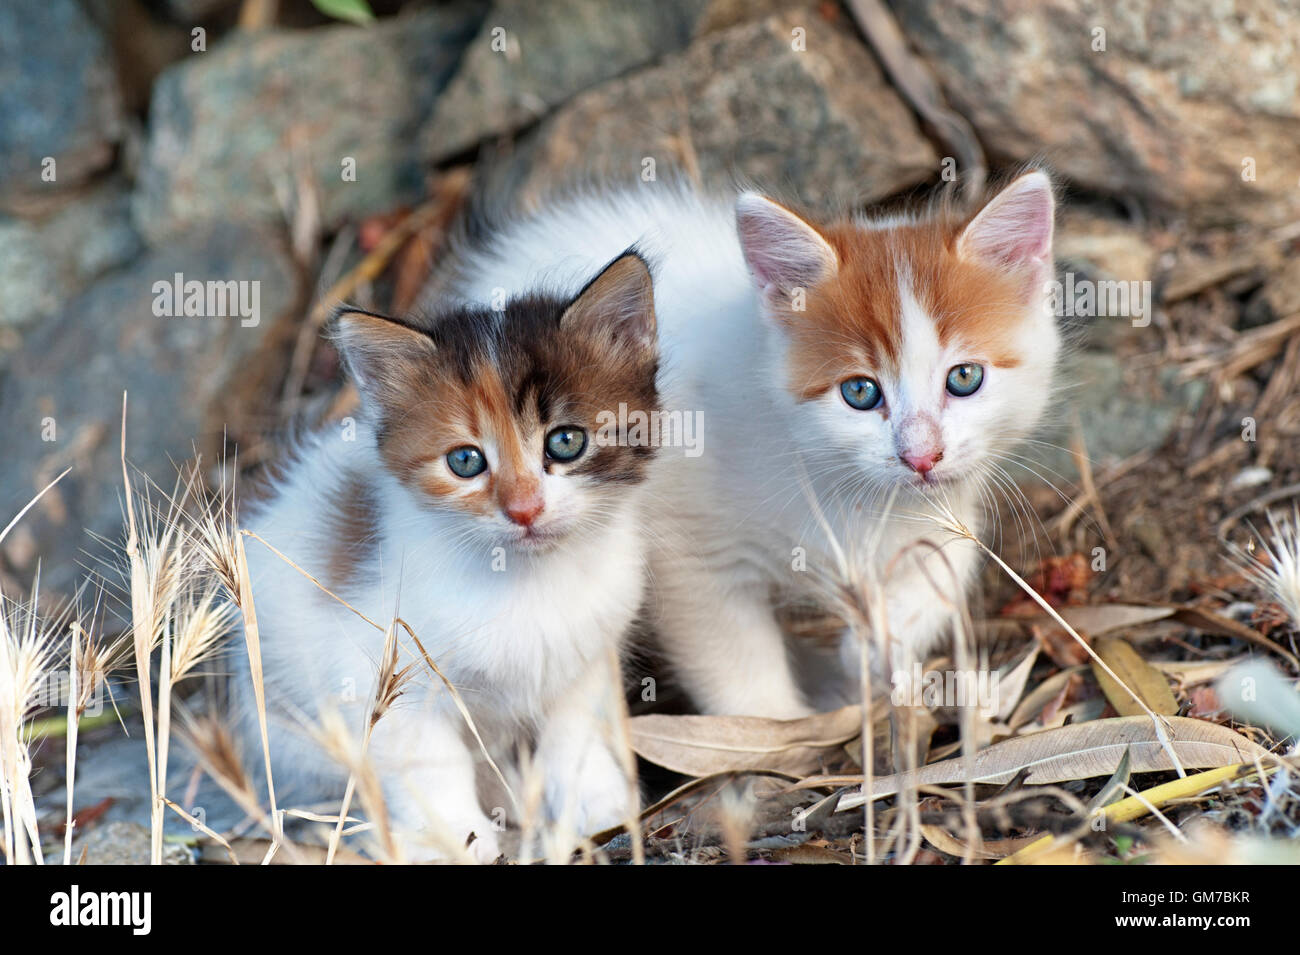 Two kittens sitting outdoors side by side and looking at camera - Stock Image